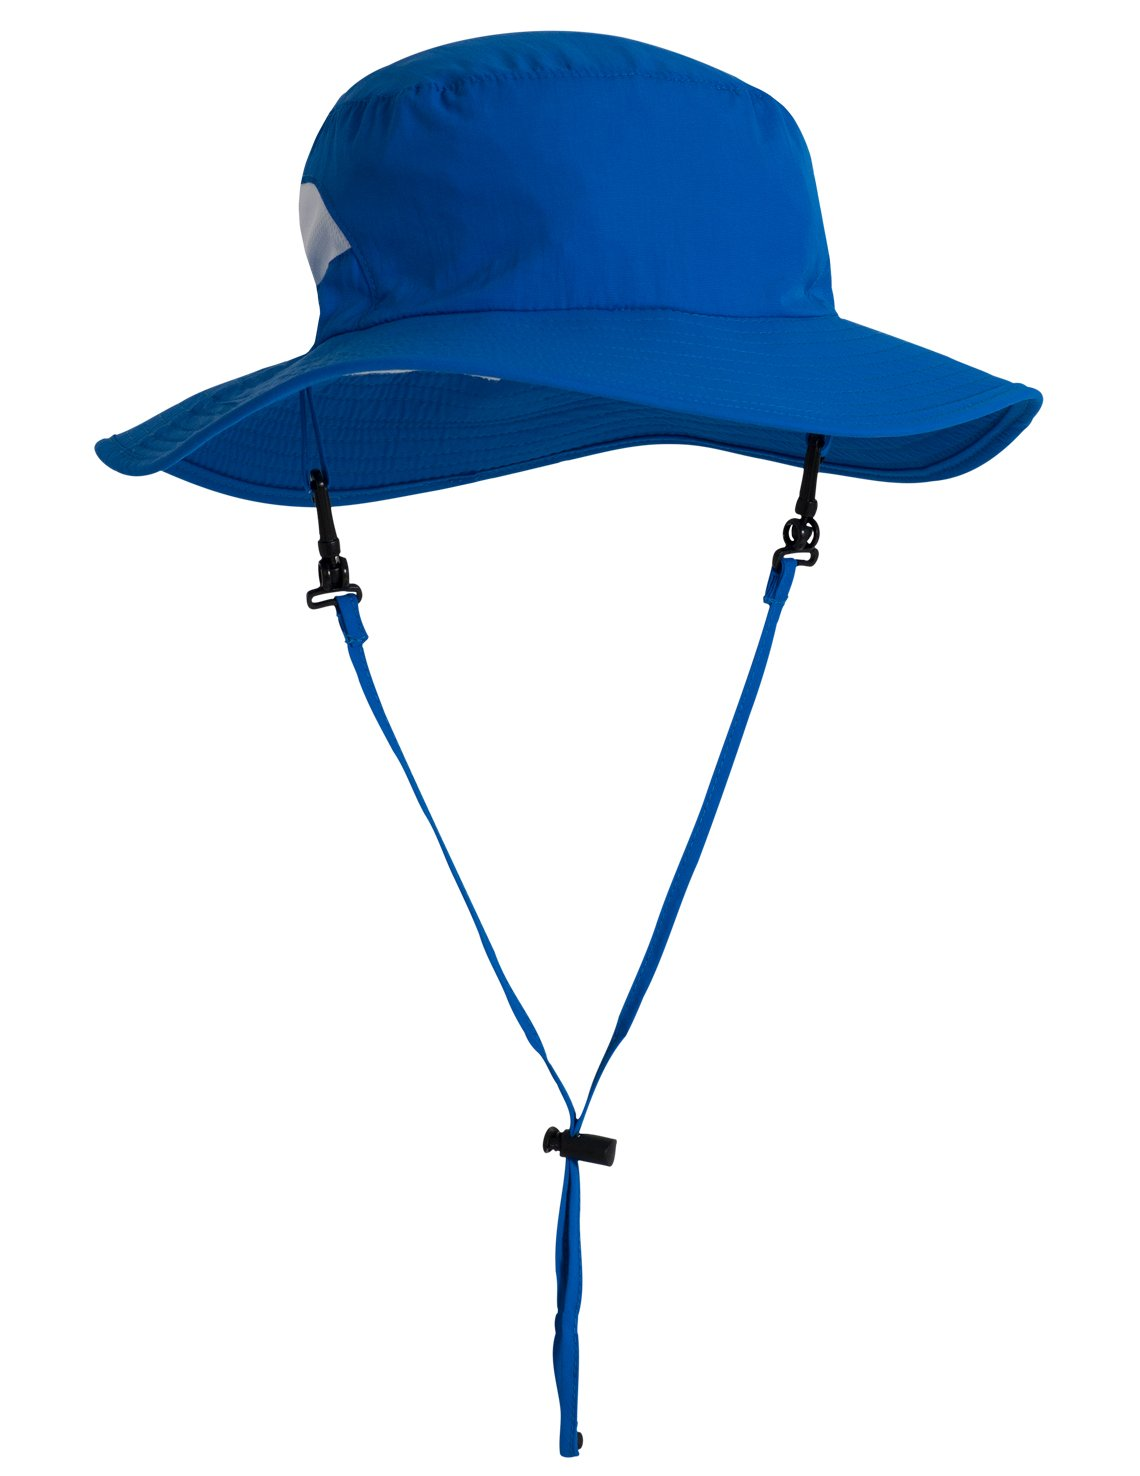 Tuga Adult Unisex Playa Bucket Hat (UPF 50+), Royal, Adult Unisex Medium